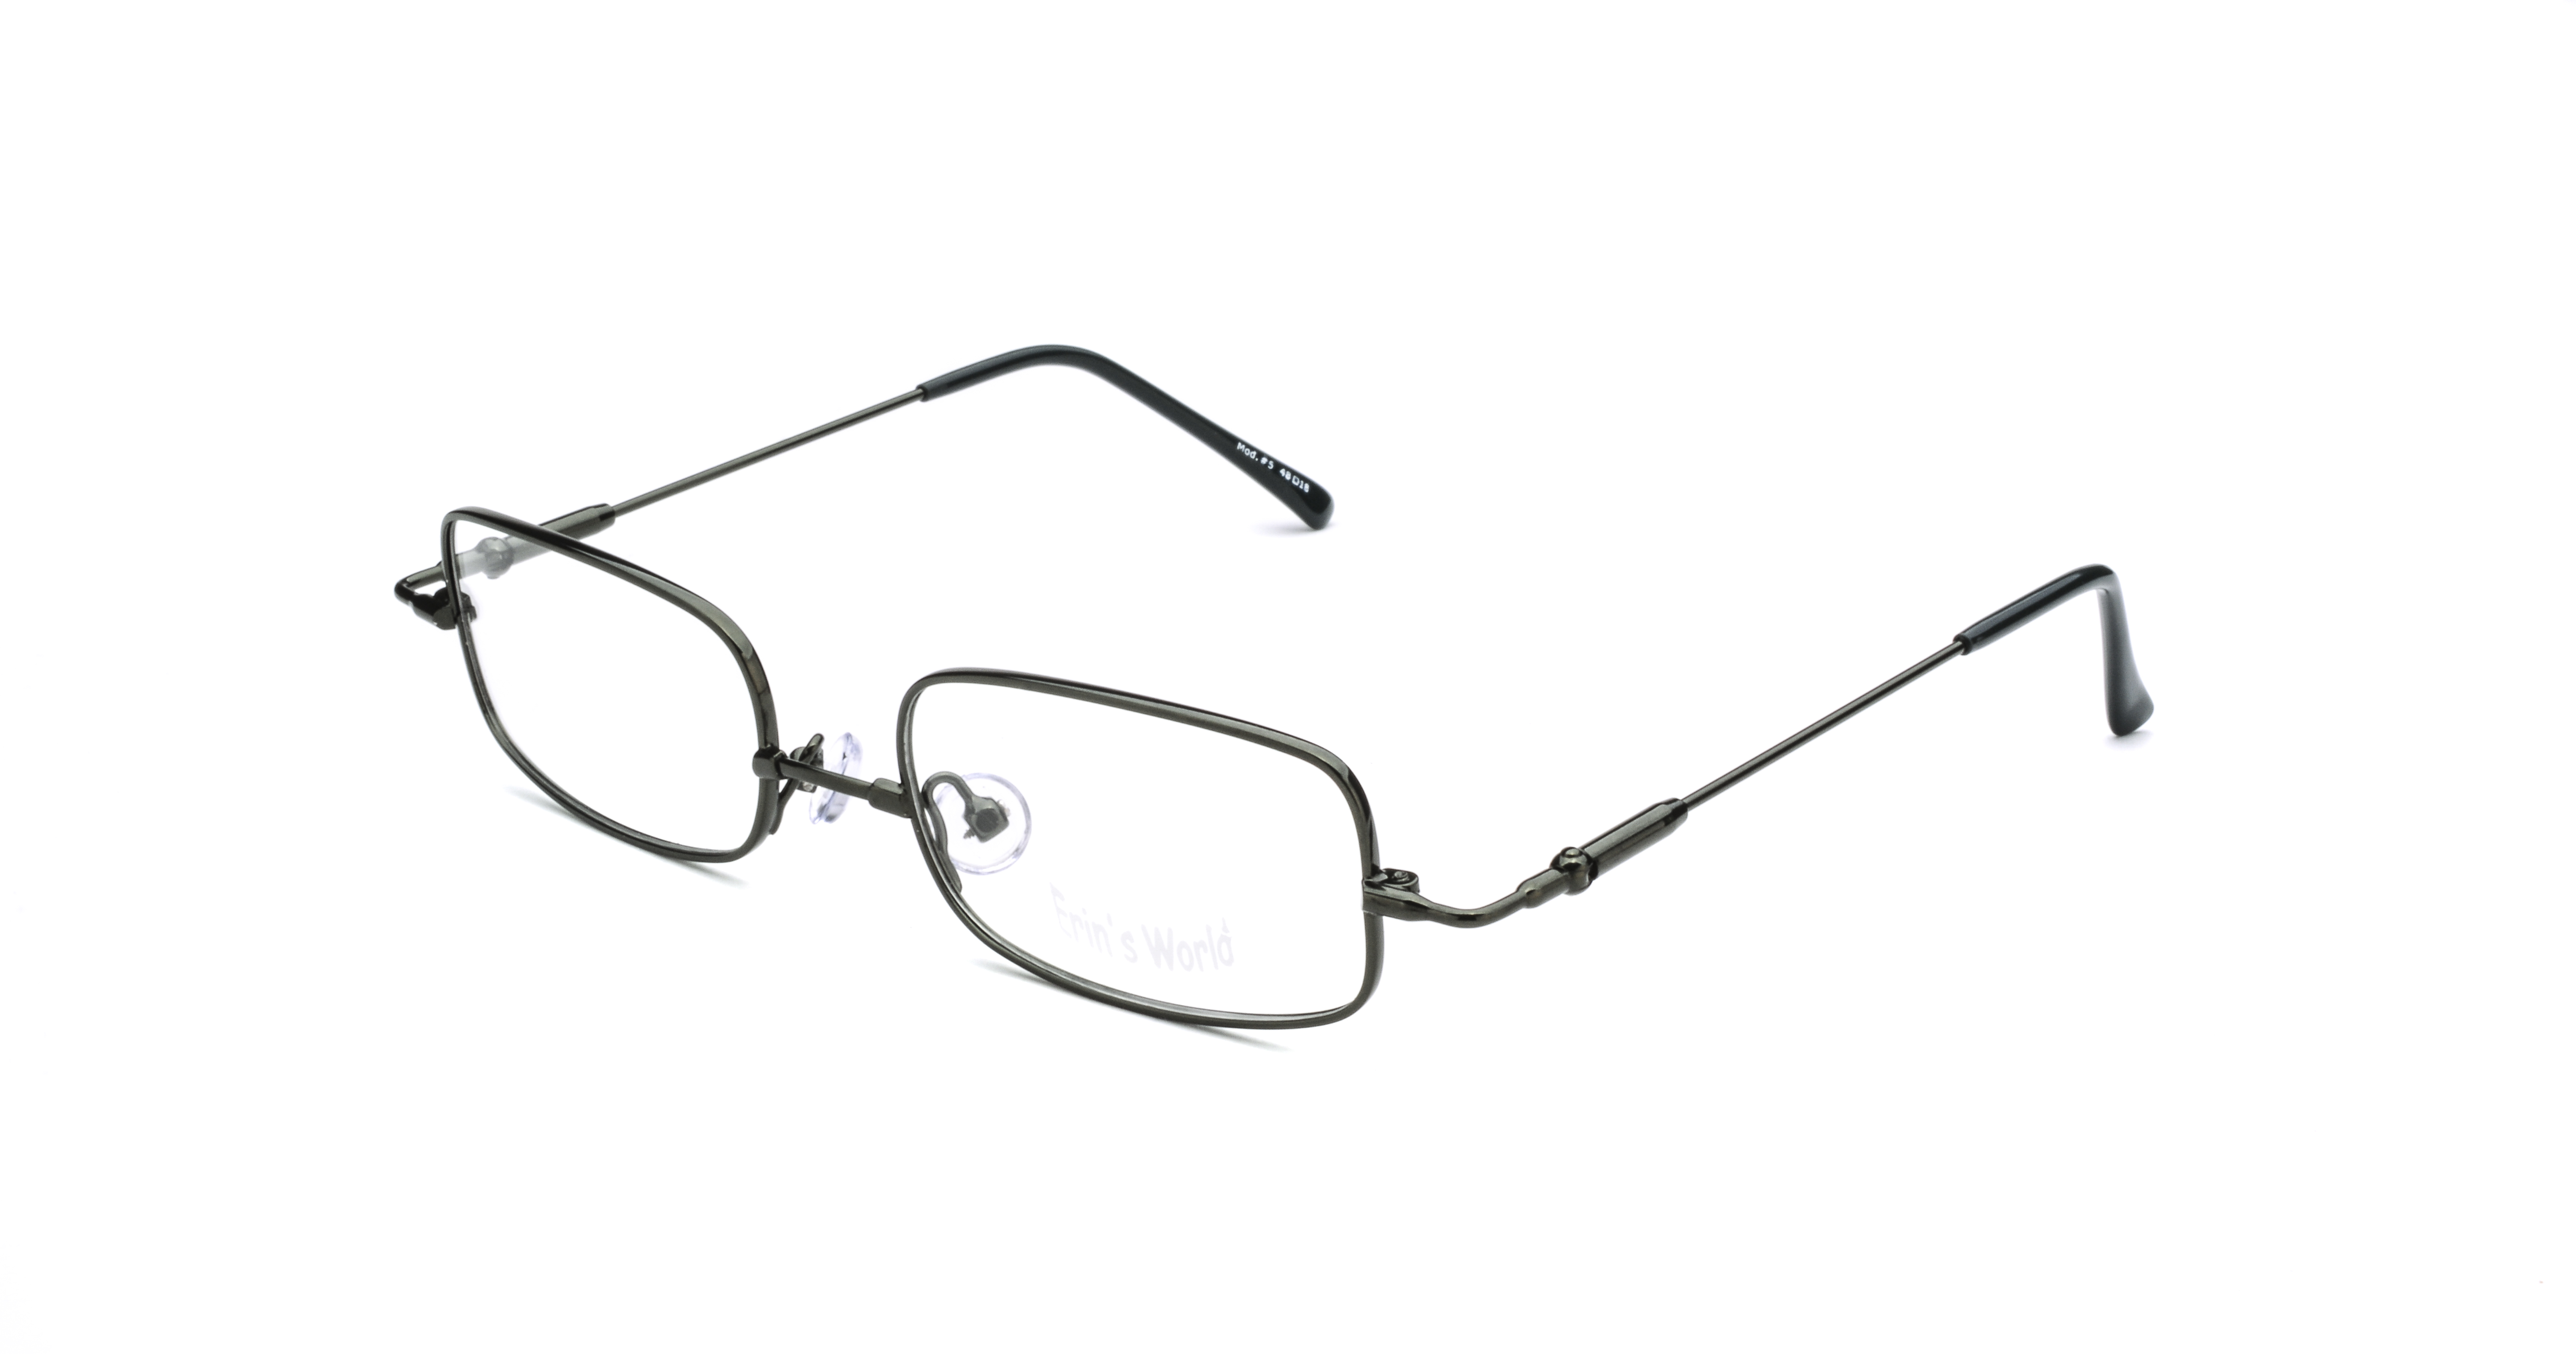 2e55a6decb Specialty Glasses for Kids - Green - Optiwow